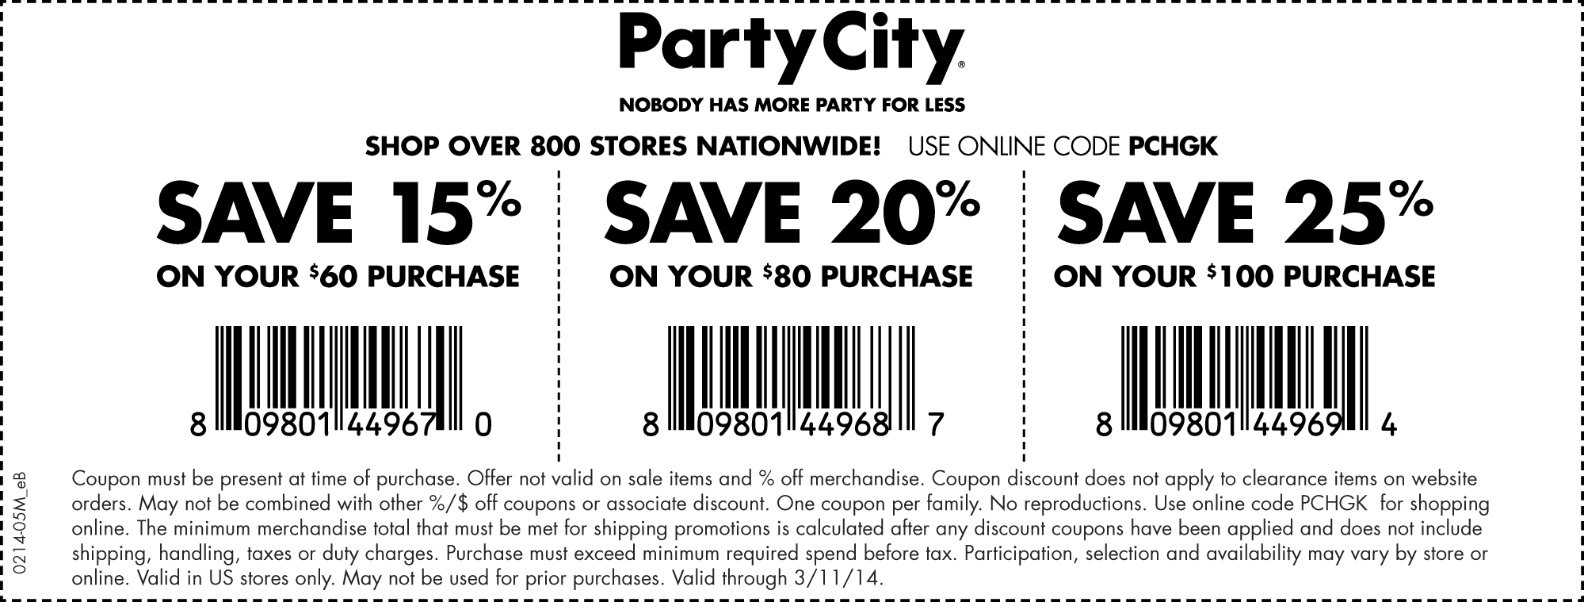 Pinned March 10th 15 Off 60 And More At Party City Or Online Via Promo Code Pchgk Coupon Via The Coup Party City Online Party Store Party Printables Free